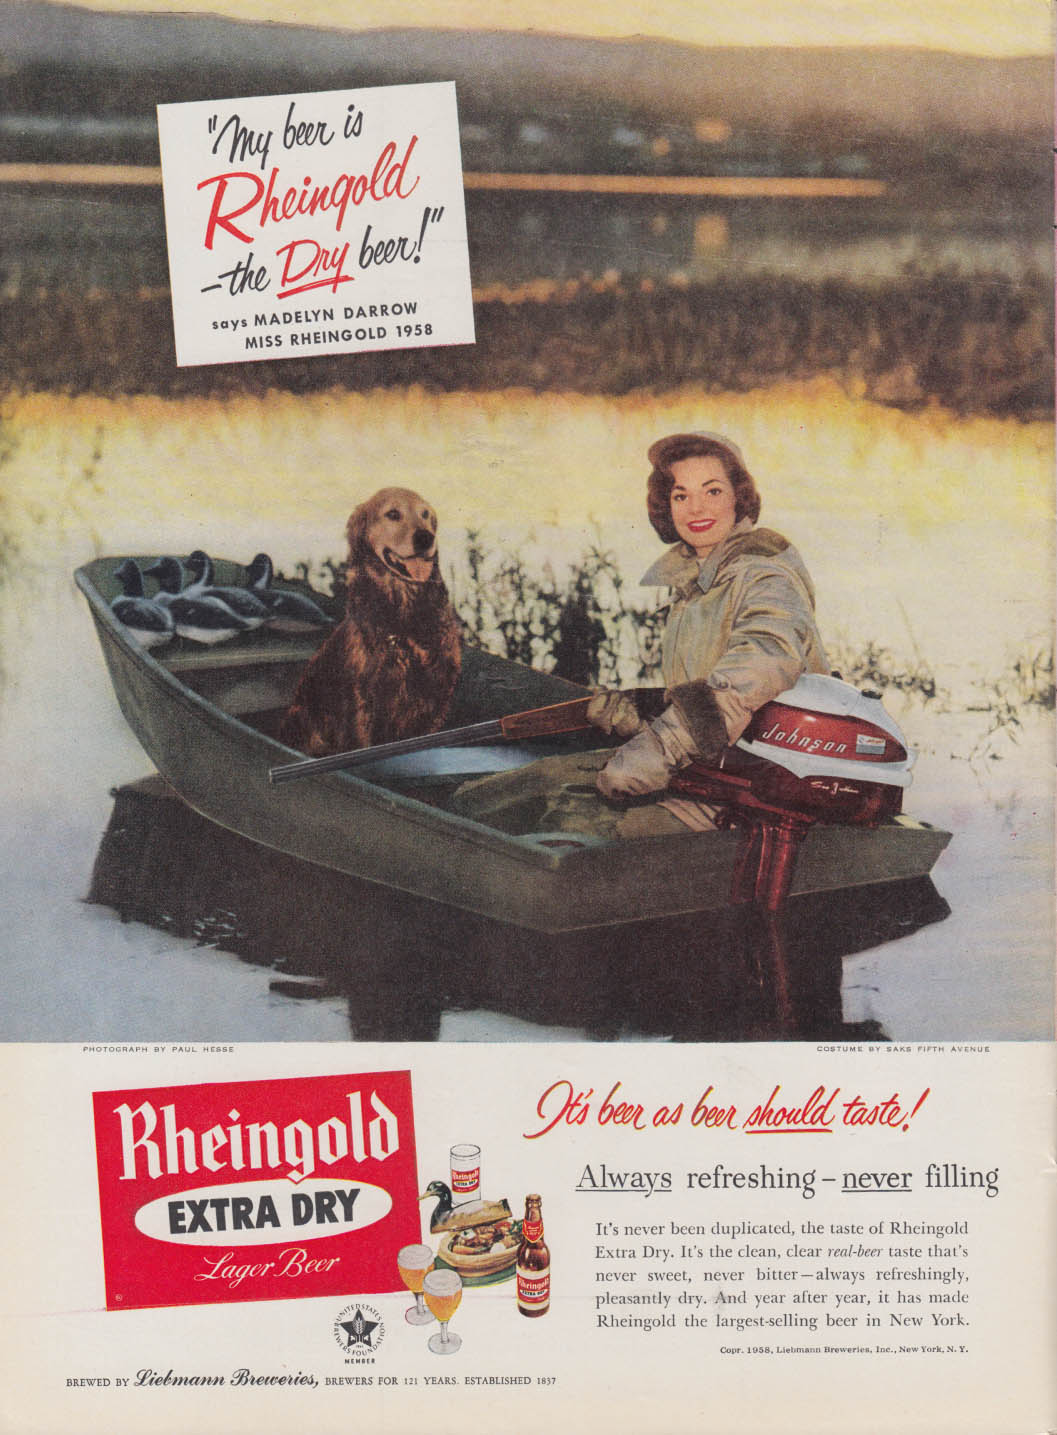 Miss Rheingold Beer Madelyn Darrow ad 1958 hunting duck from boat